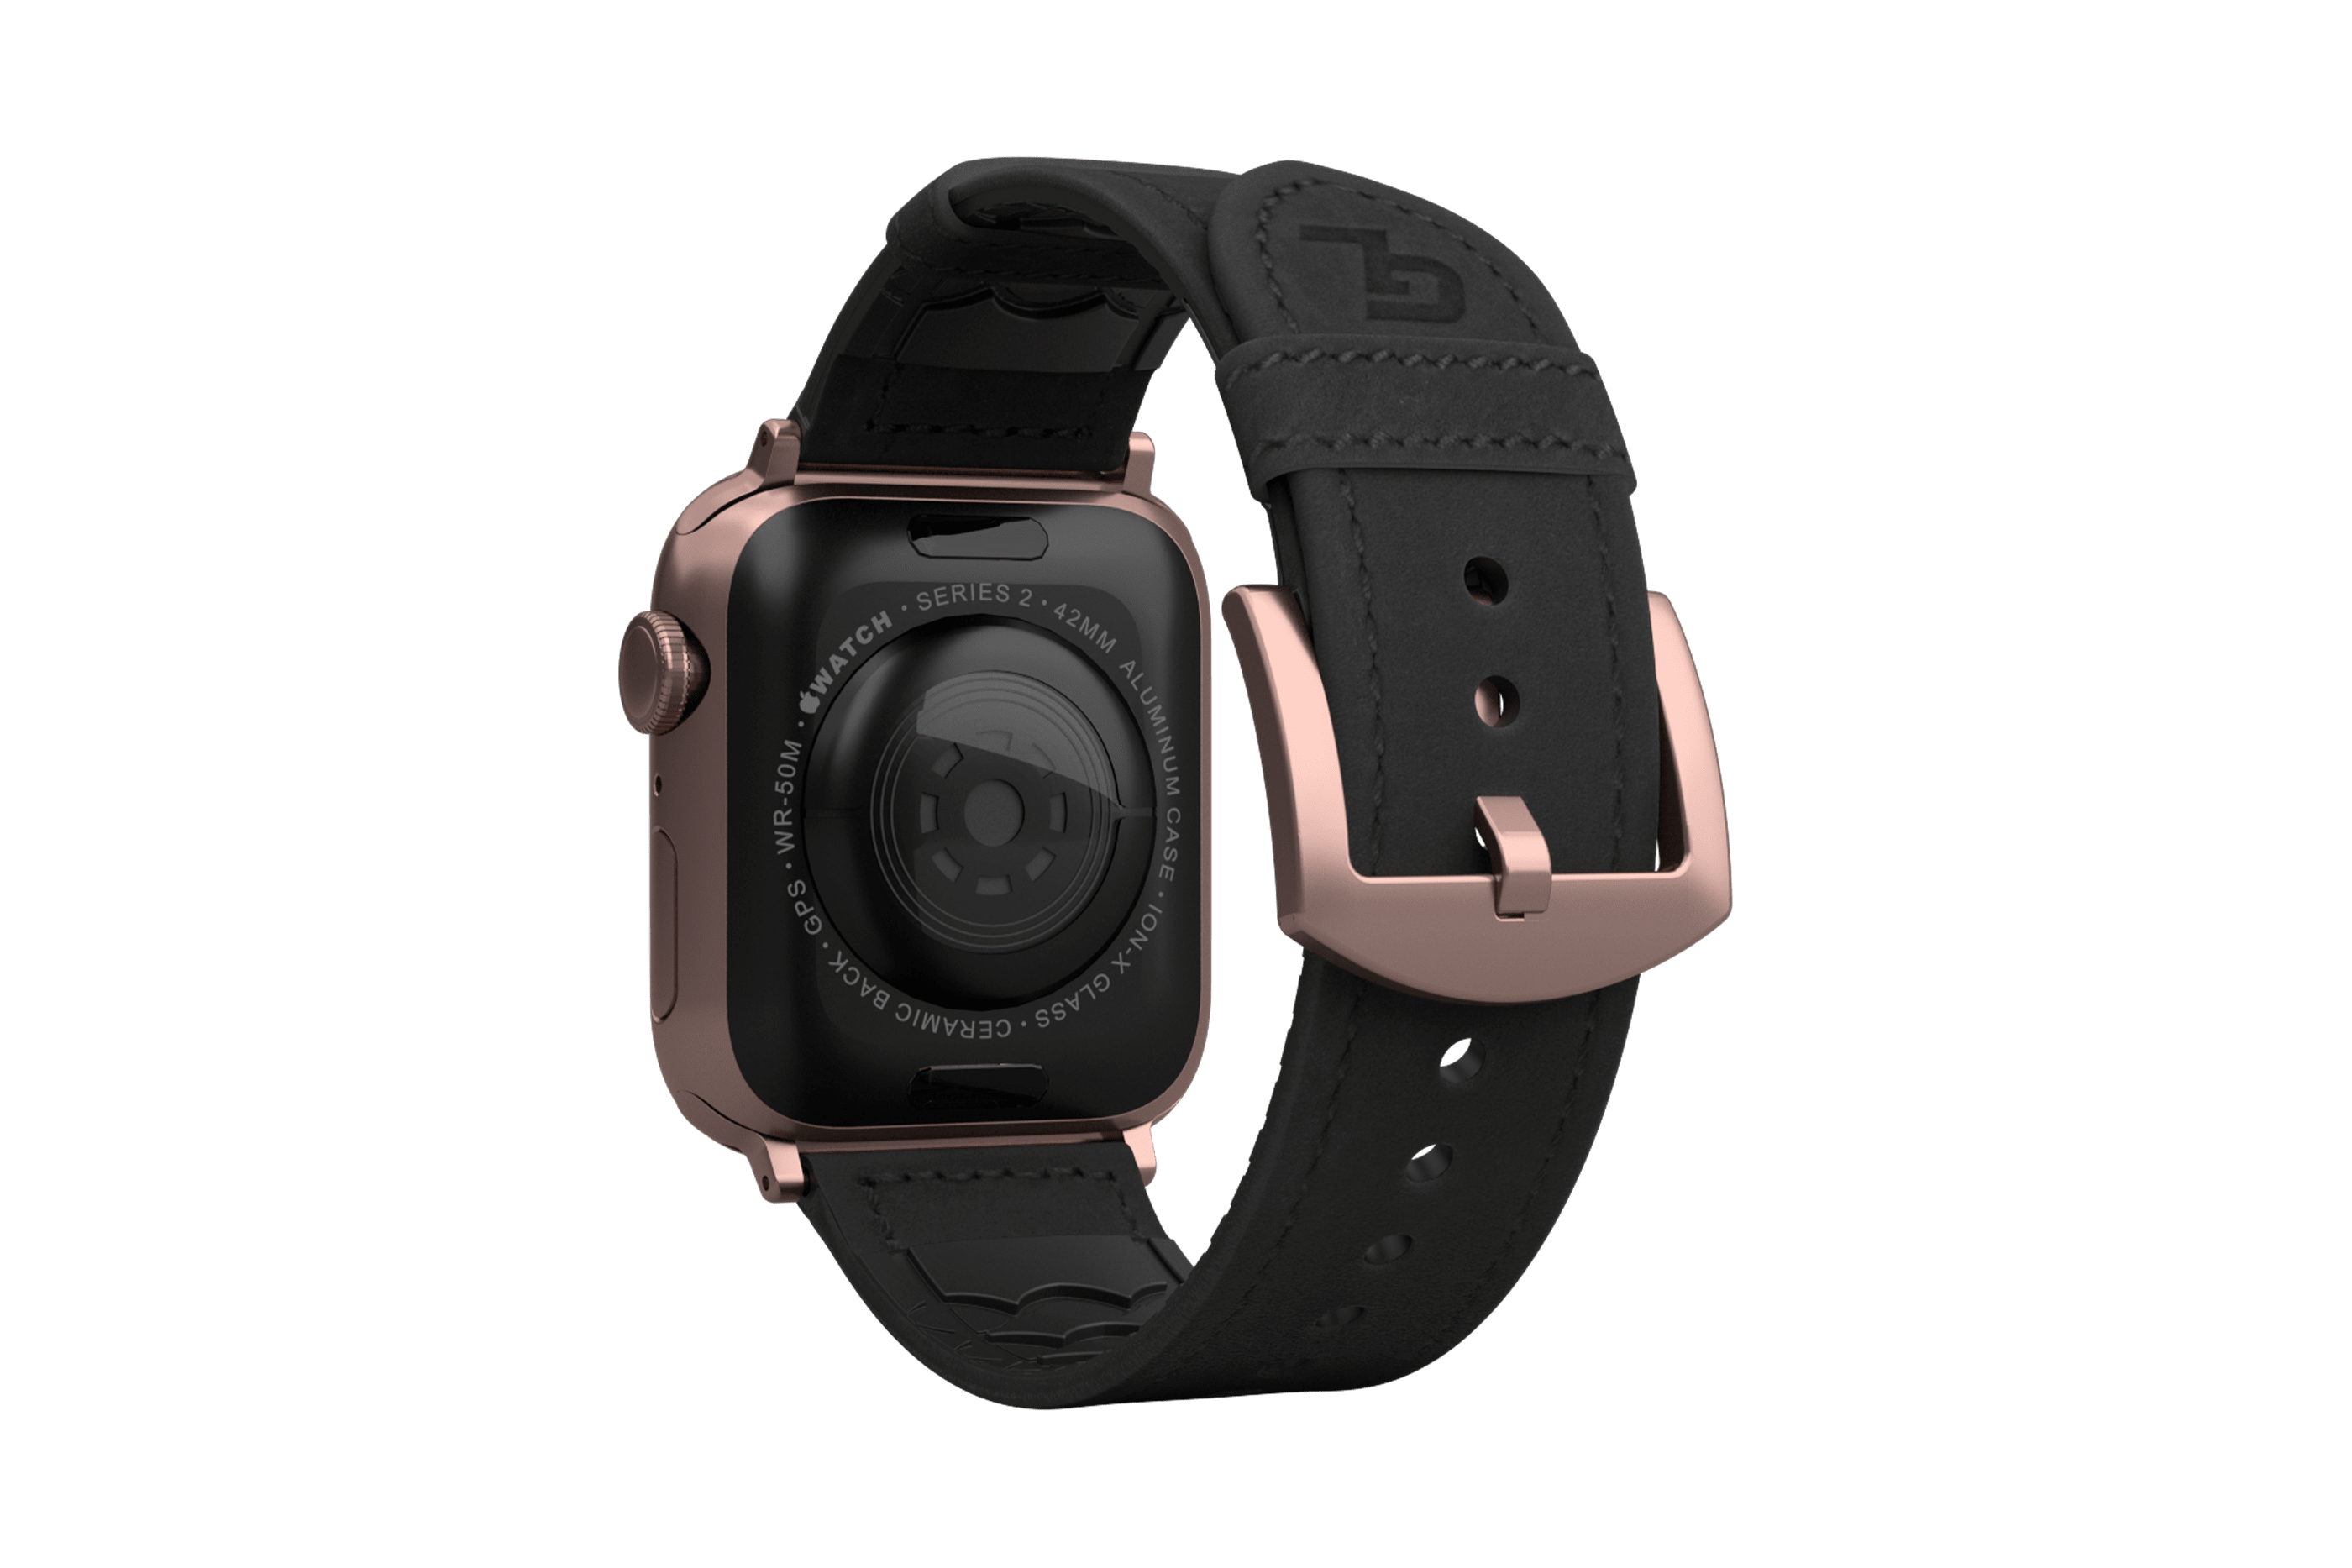 Vulcan Obsidian Black Leather apple watch band with rose gold hardware viewed from top down